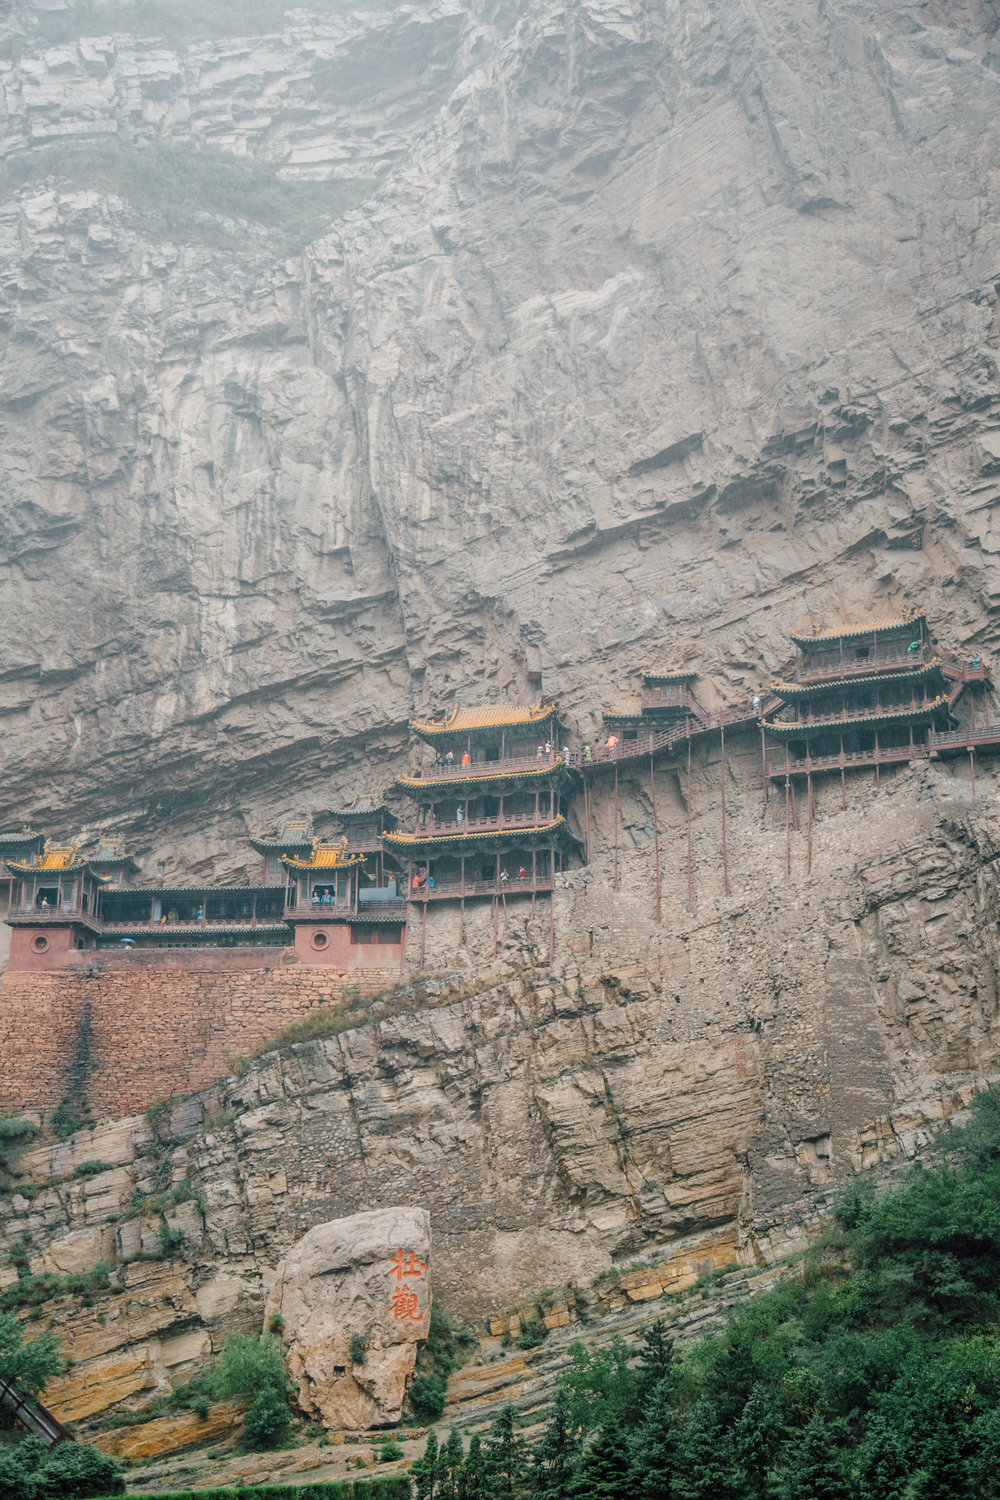 hanging temple - Datong City, Shanxi province, China